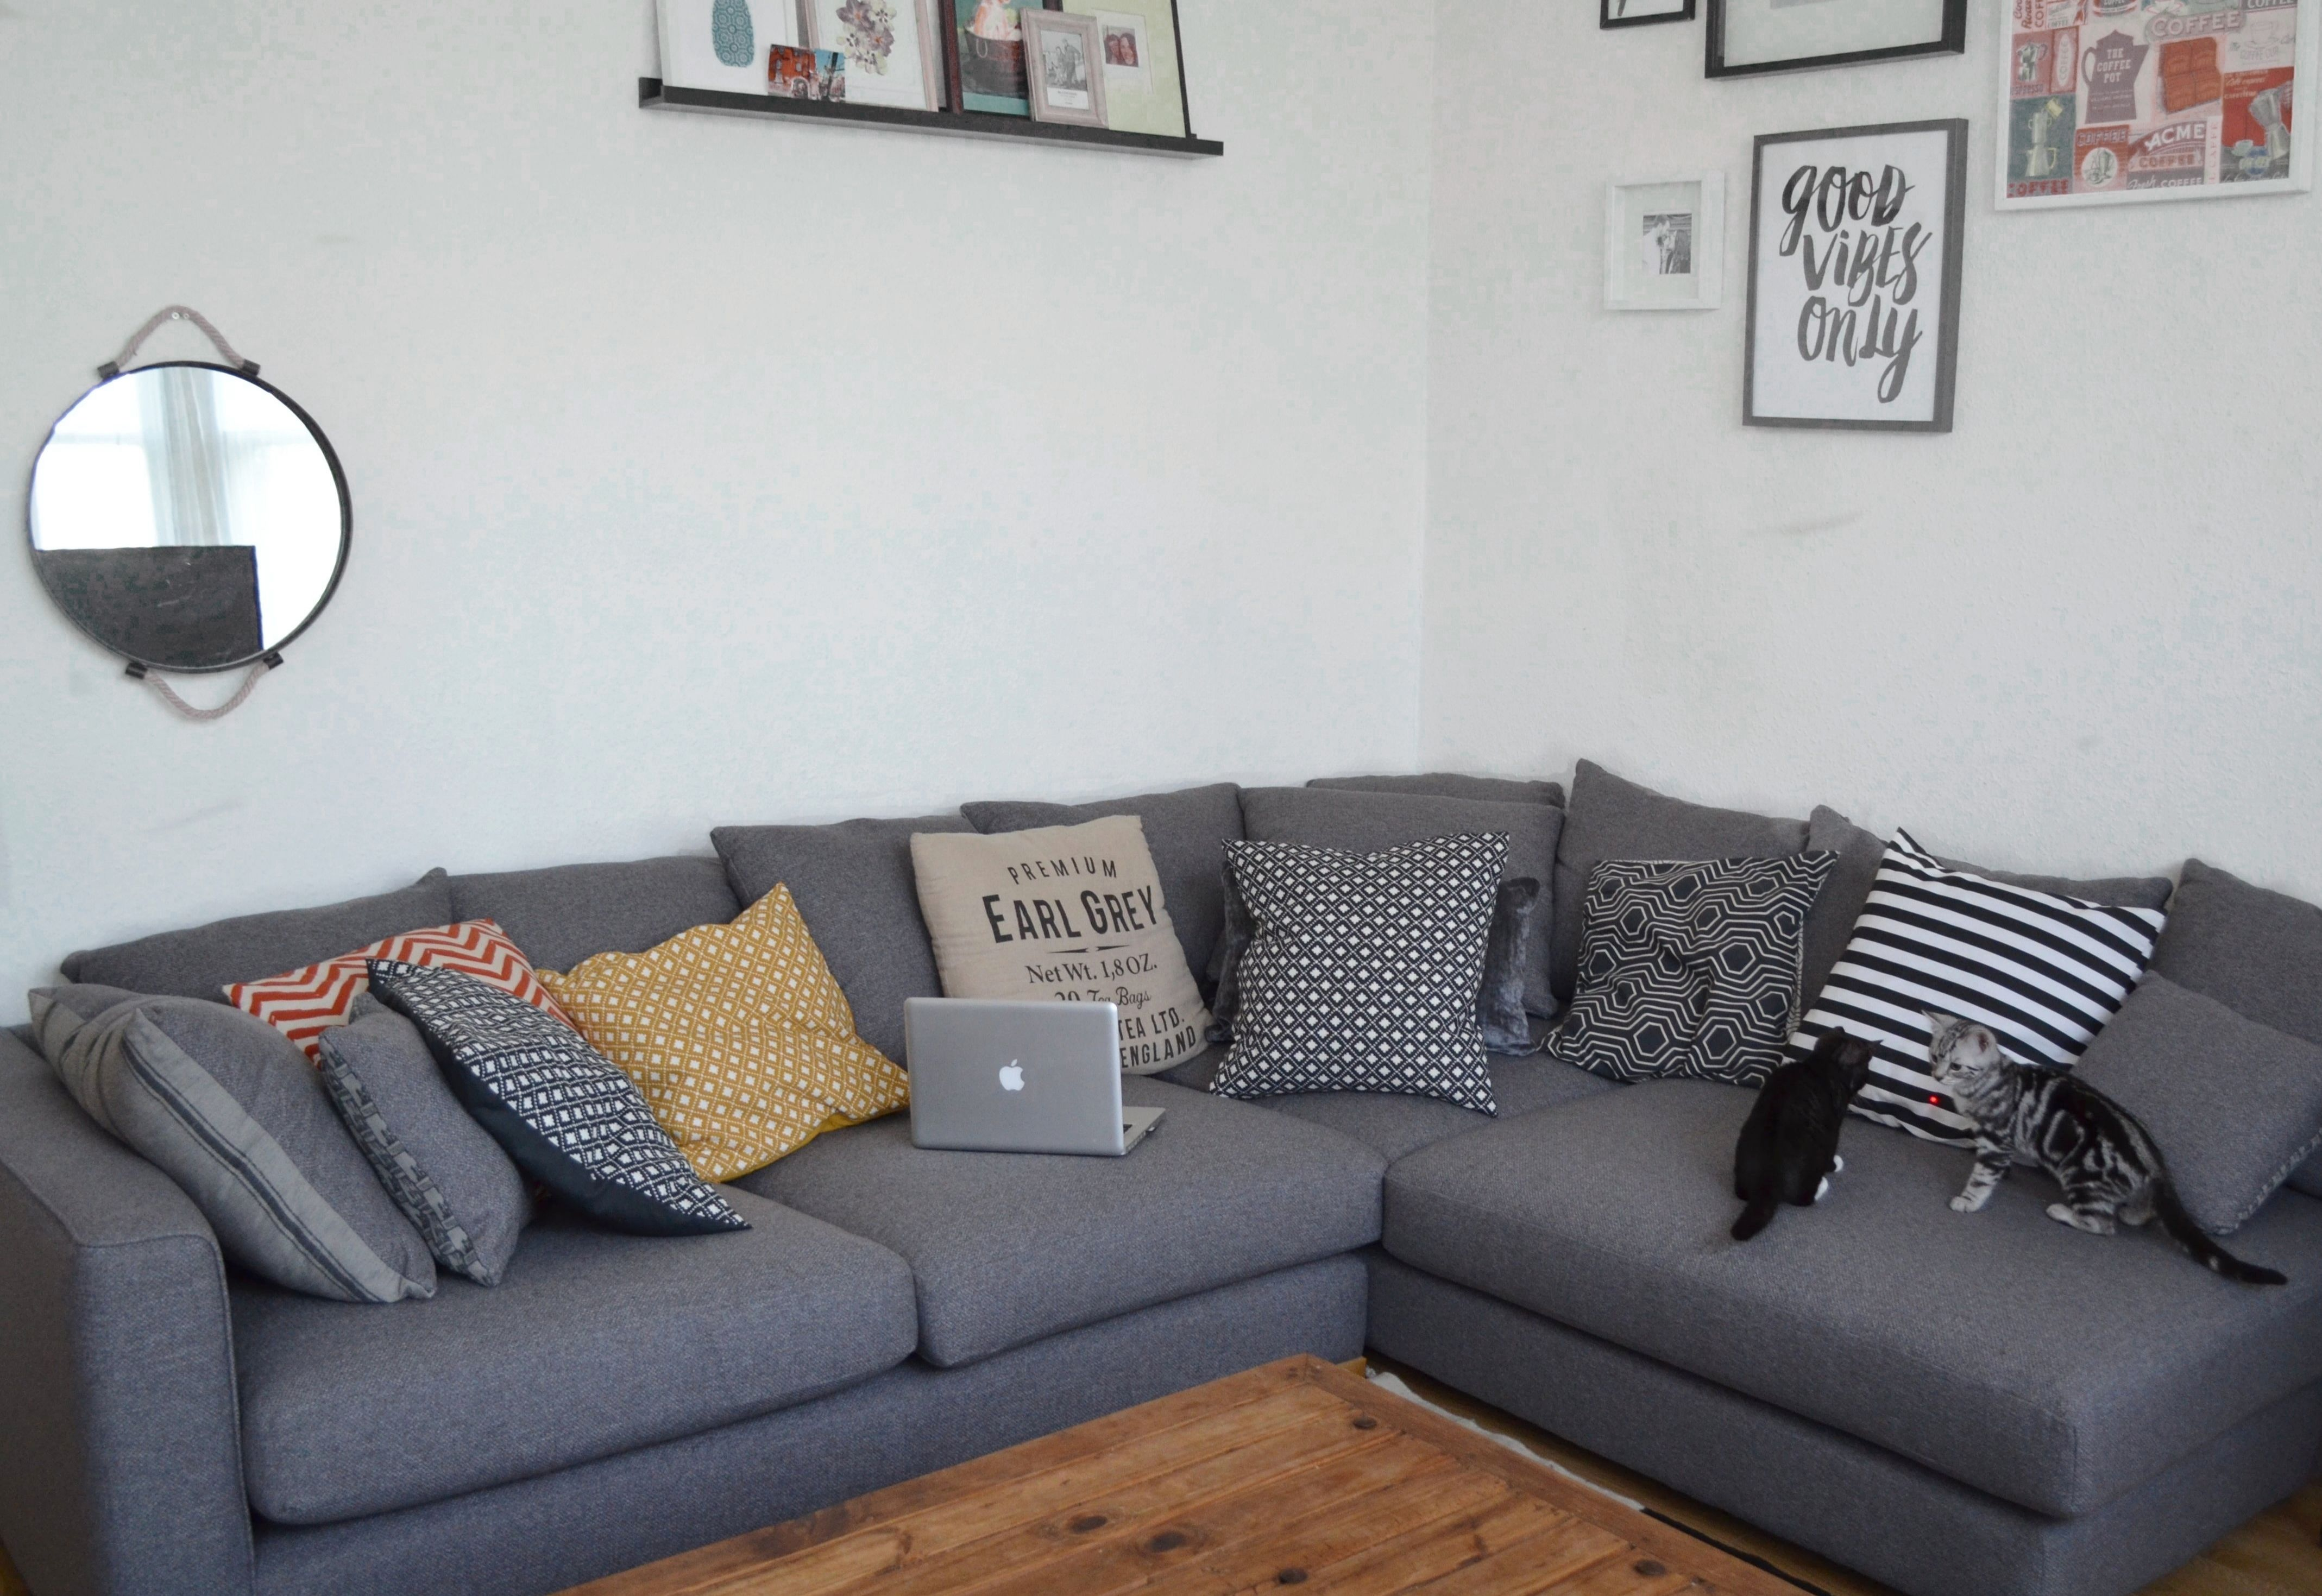 Home Is Where The Heart Is Corner Sofa Small Living Room Corner Sofa Living Room Corner Sofa #small #living #room #corner #sofa